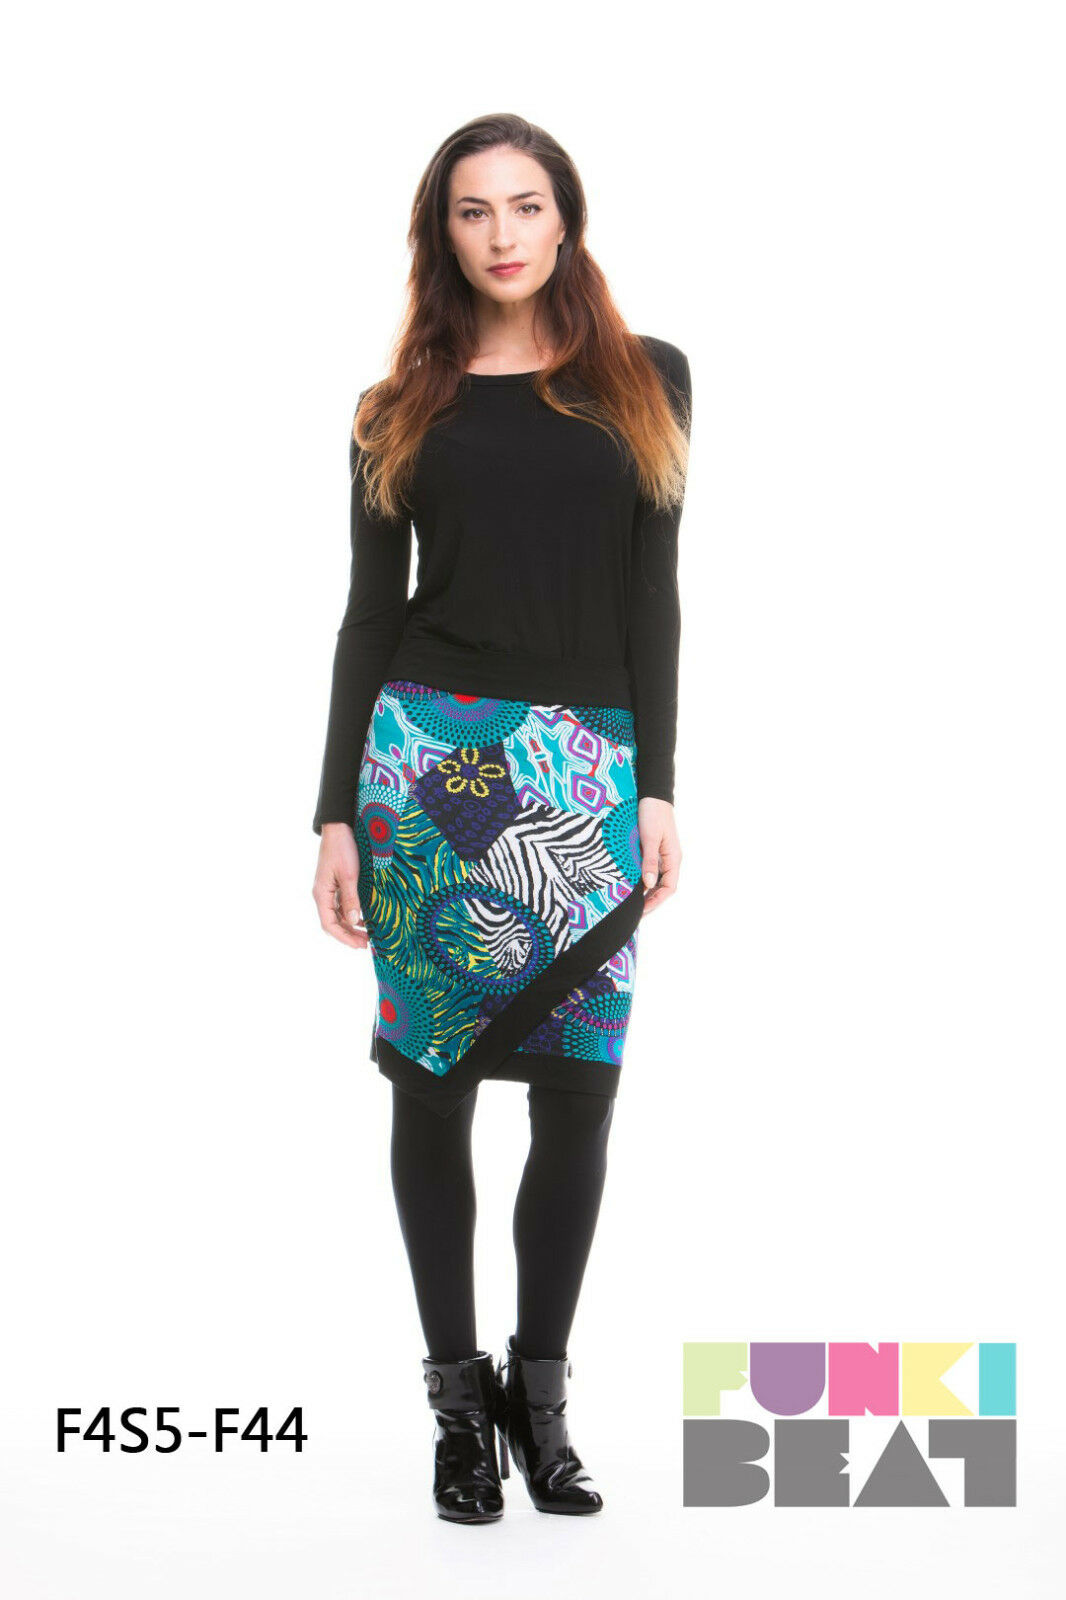 NEW LADIES FUNKIBEAT COLOURFUL SKIRT SIZES 10 & 16